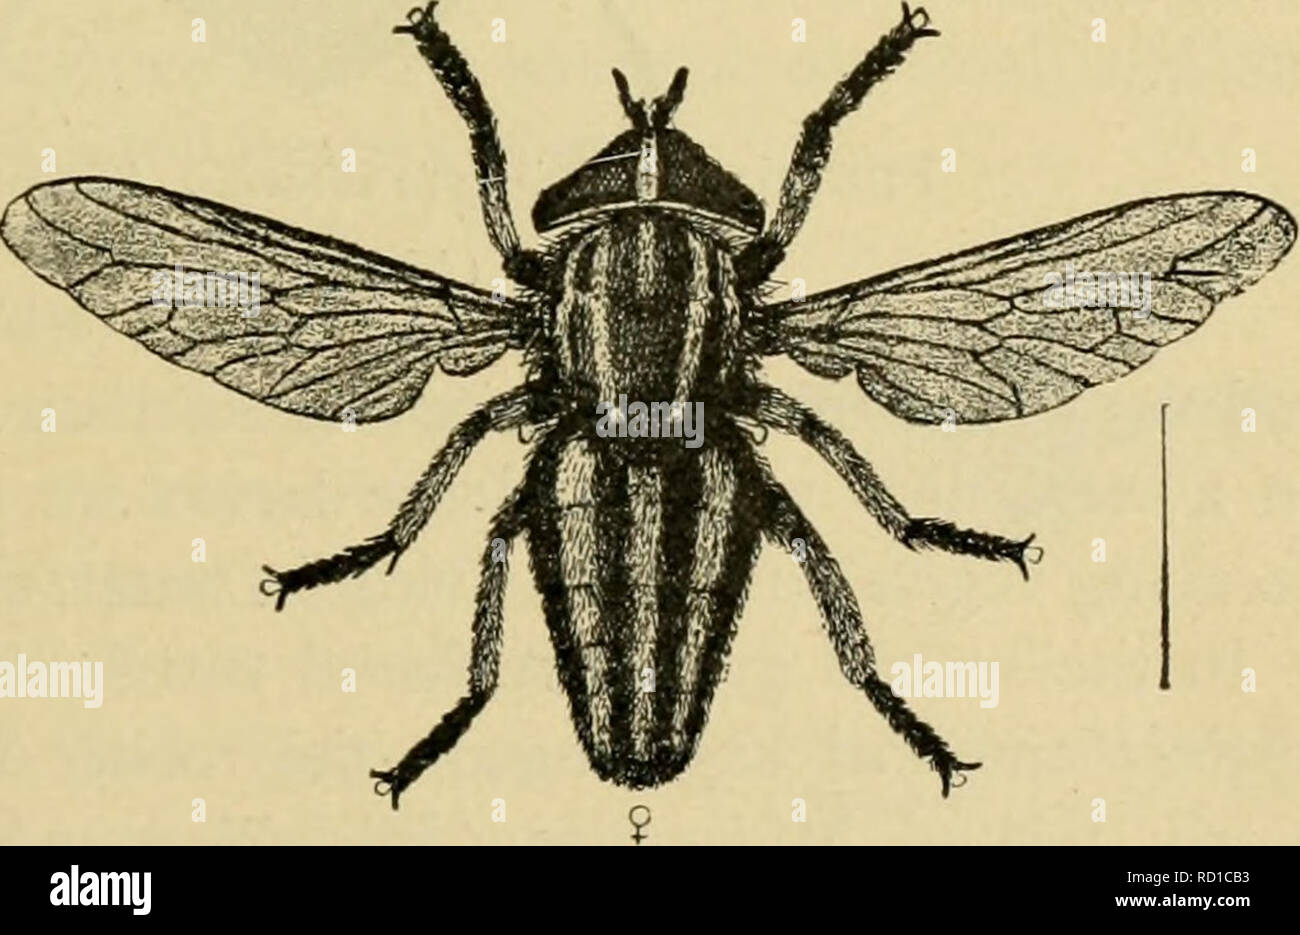 ". Elementary entomology. Entomology. Fig. 361. Horse-fly {Tahanus atratics) n, lan'a ; fi, pupa ; c, adult, (.fter Riley) SHORf-HORNEl) FLIES {BRACHYCEKA) In this section the antennae are composed of from three to five segments, the famihes being divided into three groups according to the structure of the  V/ / antennae, and being fur- ther distinguished by w^^ ^^-""•••""""?=grr^^^)^.^=r:^^^grr^^^^ the wing-vcnation. .3 X. , —..-^jMBirfiii* . . ^ ev In the first group the third segment of the an- tenna is clearly ringed, showing that it is made up of several segments grown togeth - Stock Image"